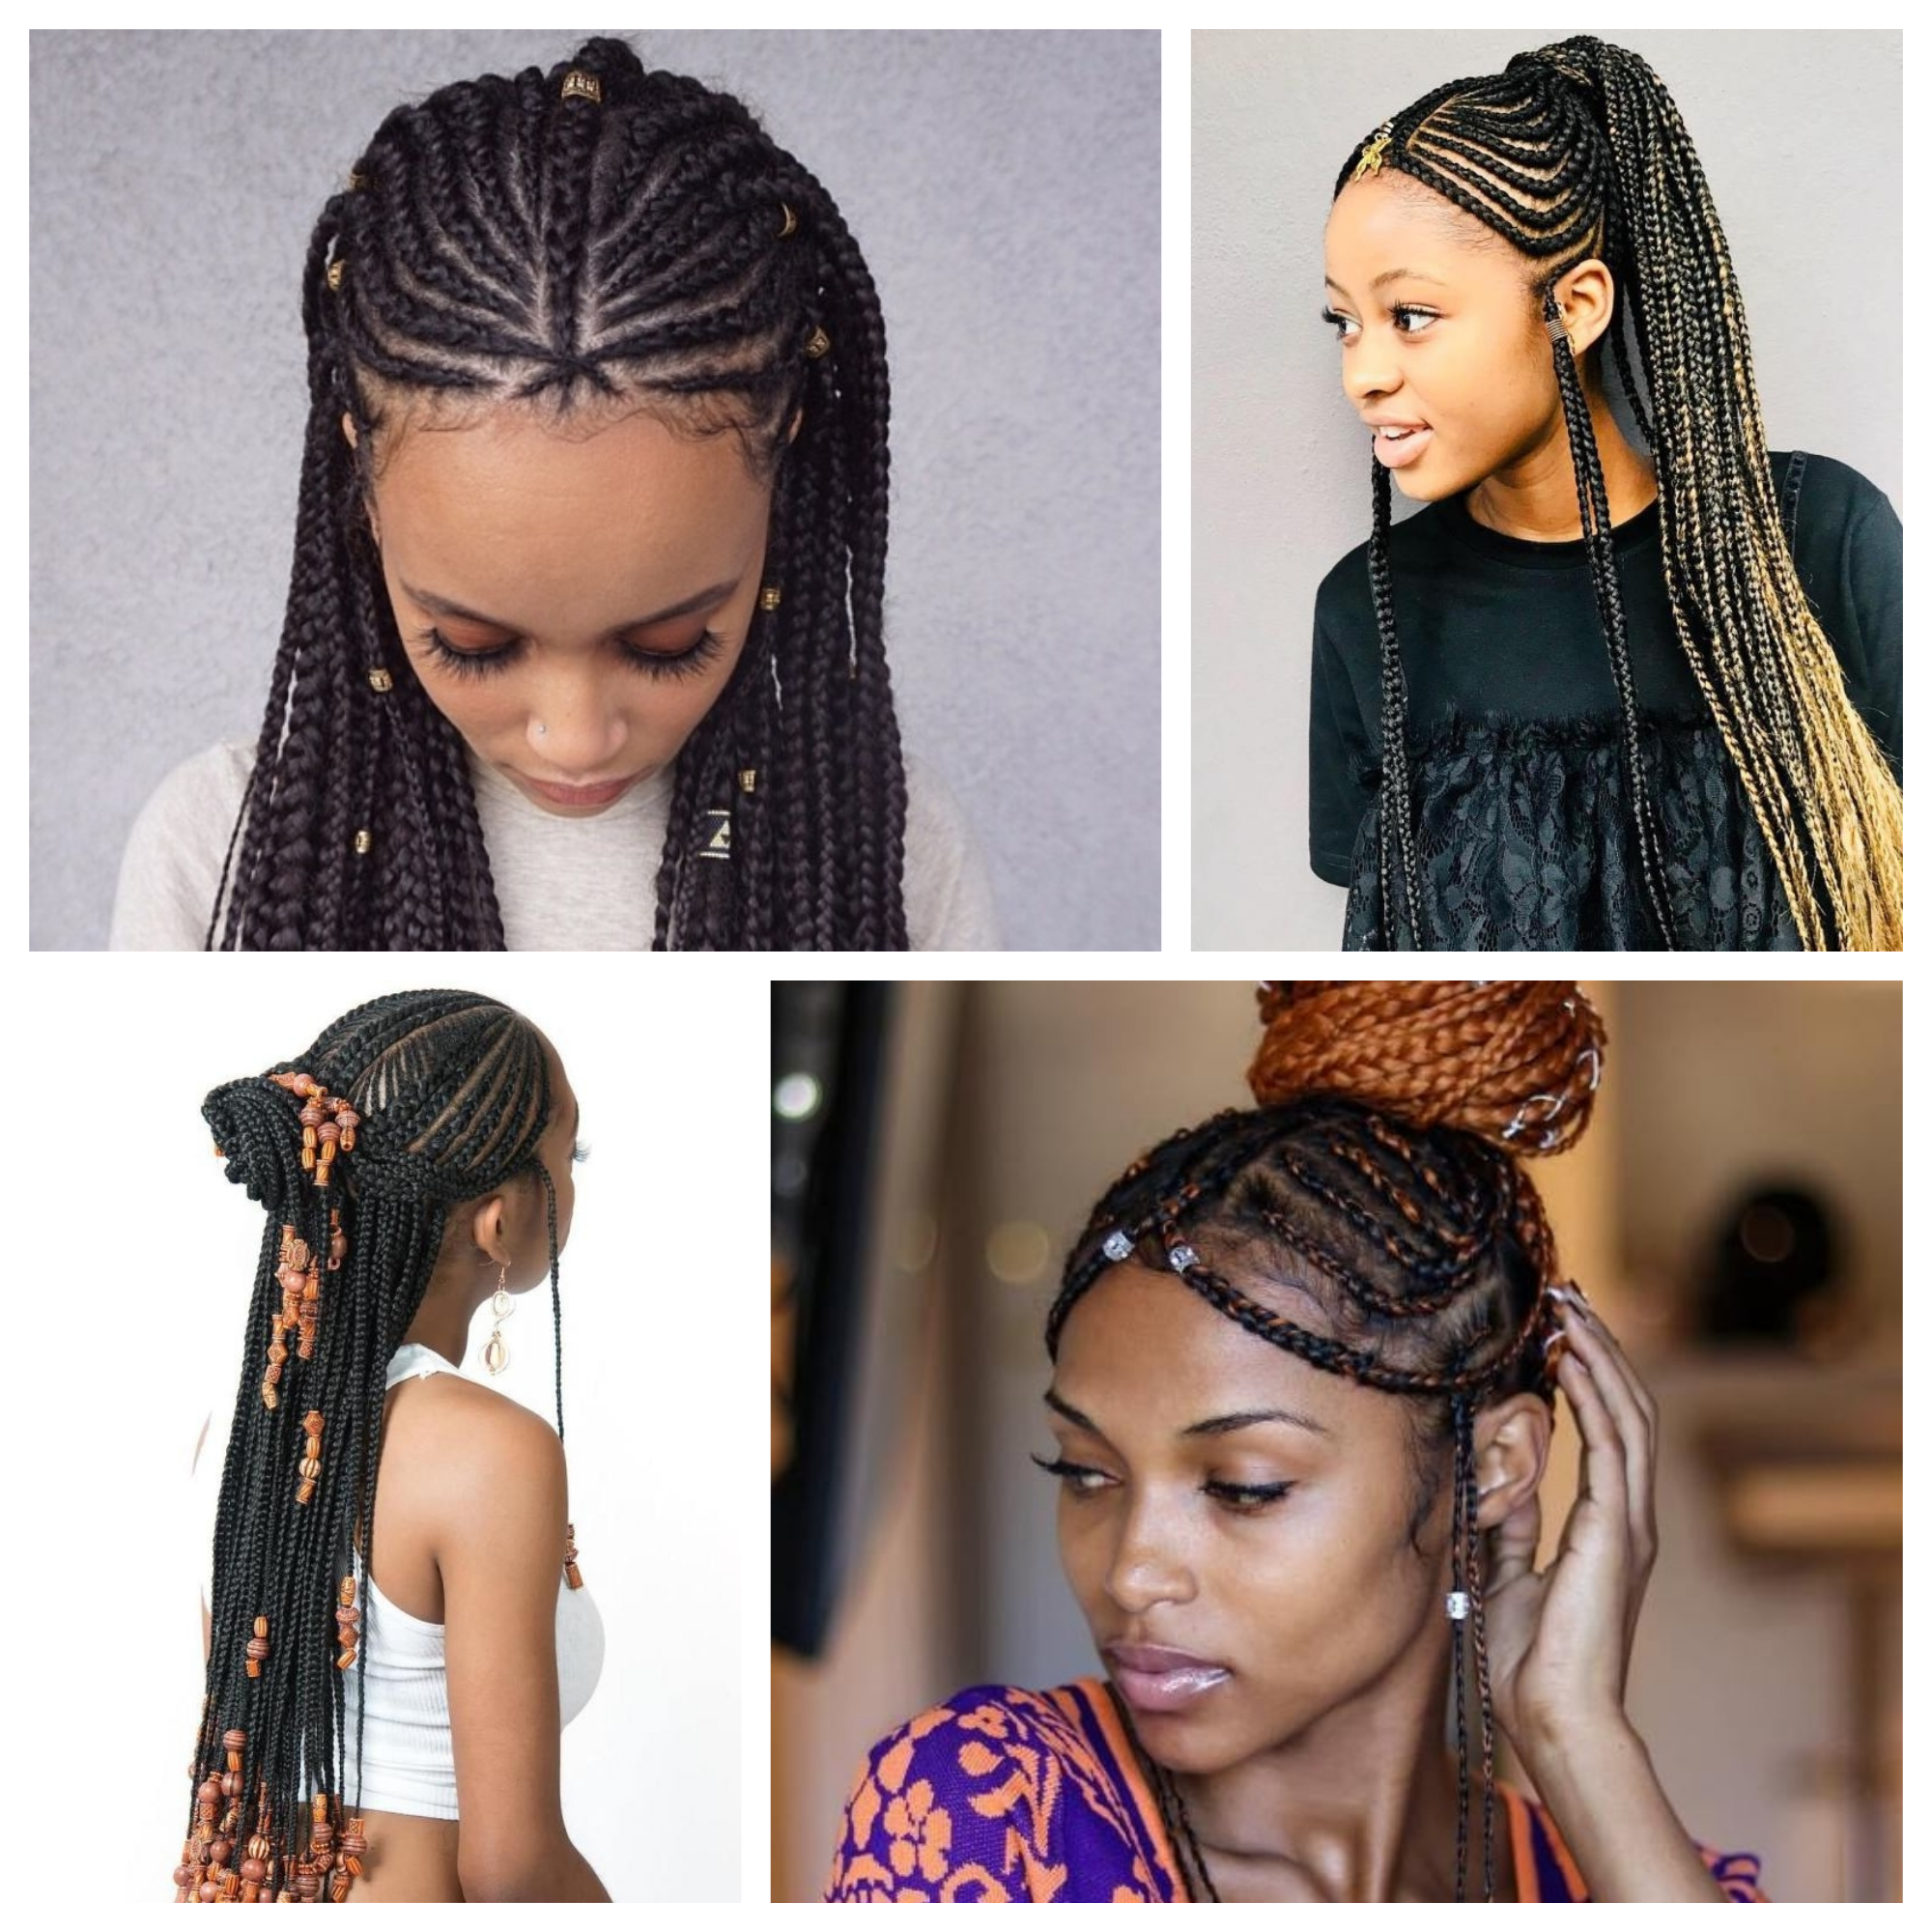 Trendy Braided Crown Hairstyles With Bright Beads With Regard To Braided Hairstyles (Gallery 4 of 20)